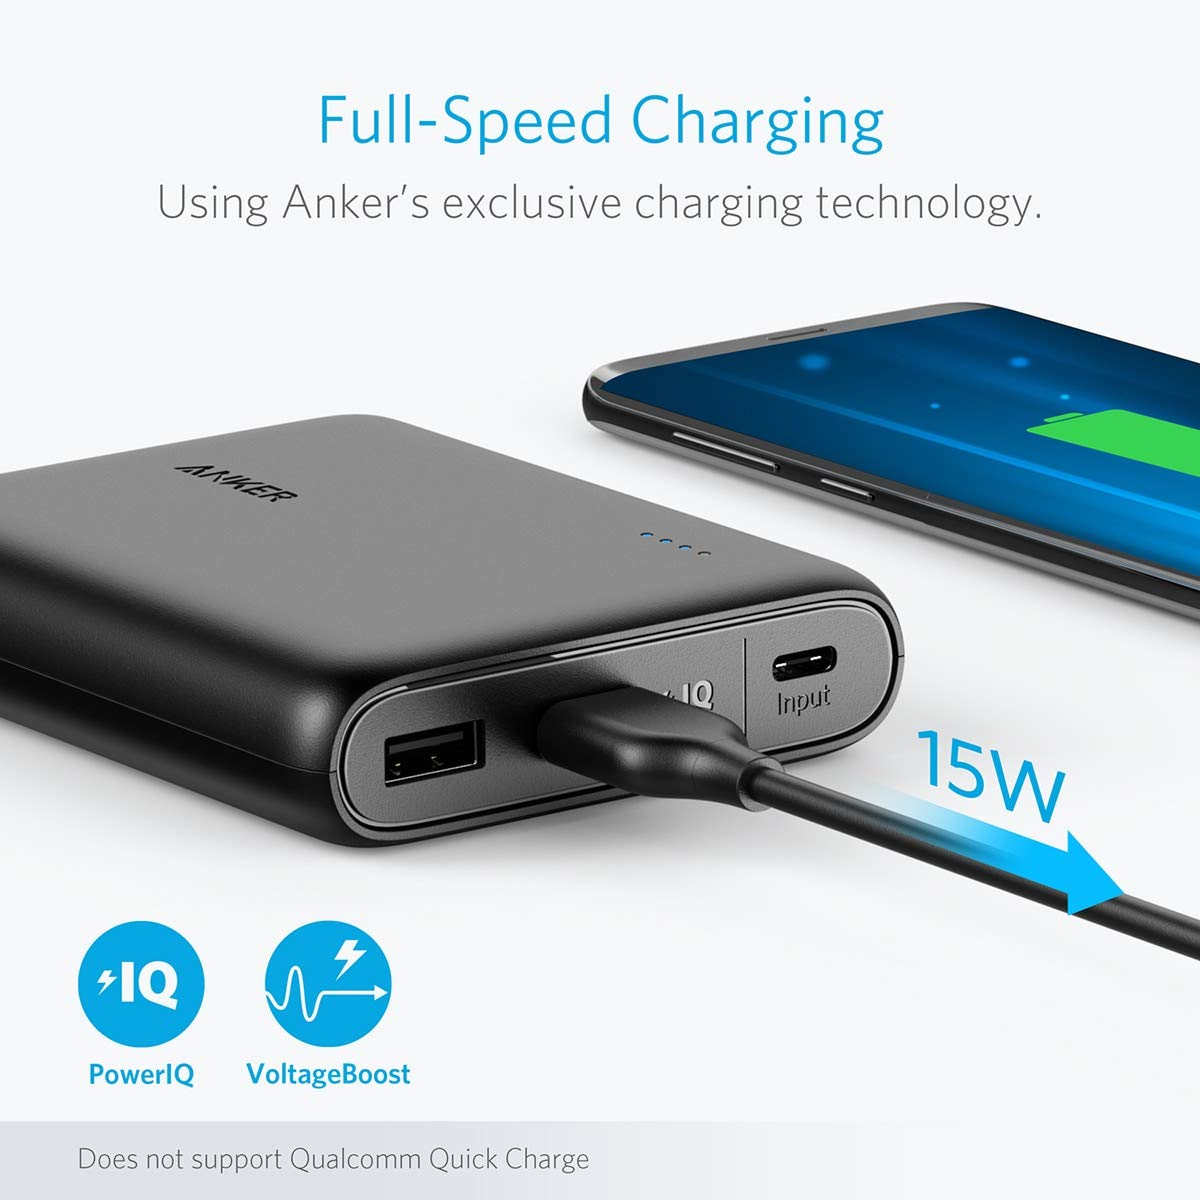 974e1b36b54 Amazon.com: Anker PowerCore 13000 C (USB-C Input only), Compact 13000mAh  2-Port Ultra Portable Phone Charger, Power Bank with PowerIQ and  VoltageBoost ...